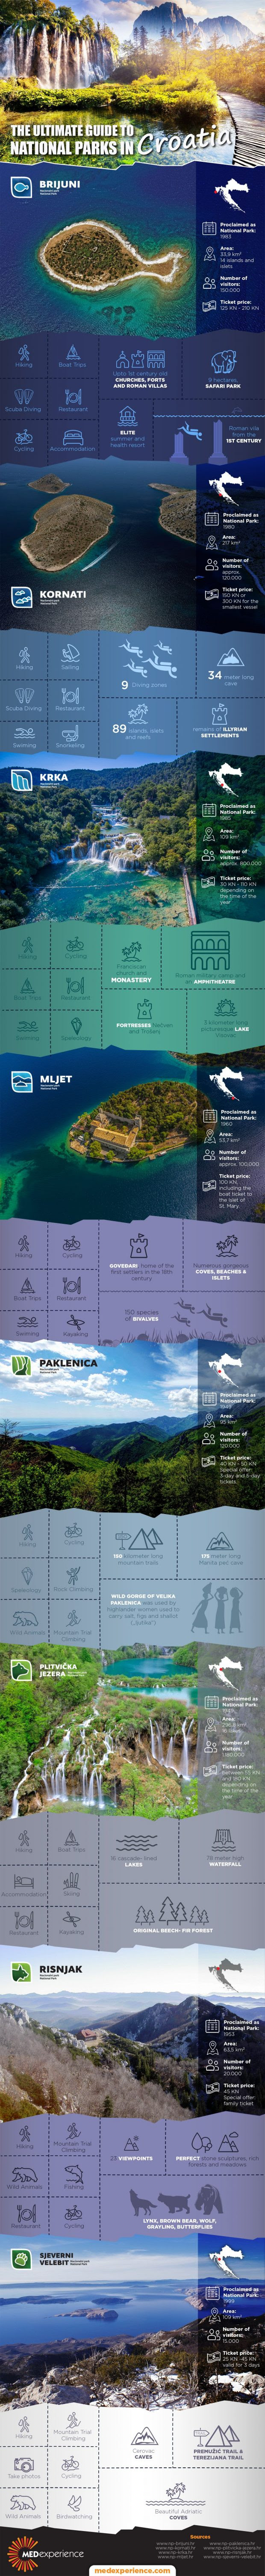 The-Ultimate-Guide-to-National-Parks-in-Croatia-Infographic